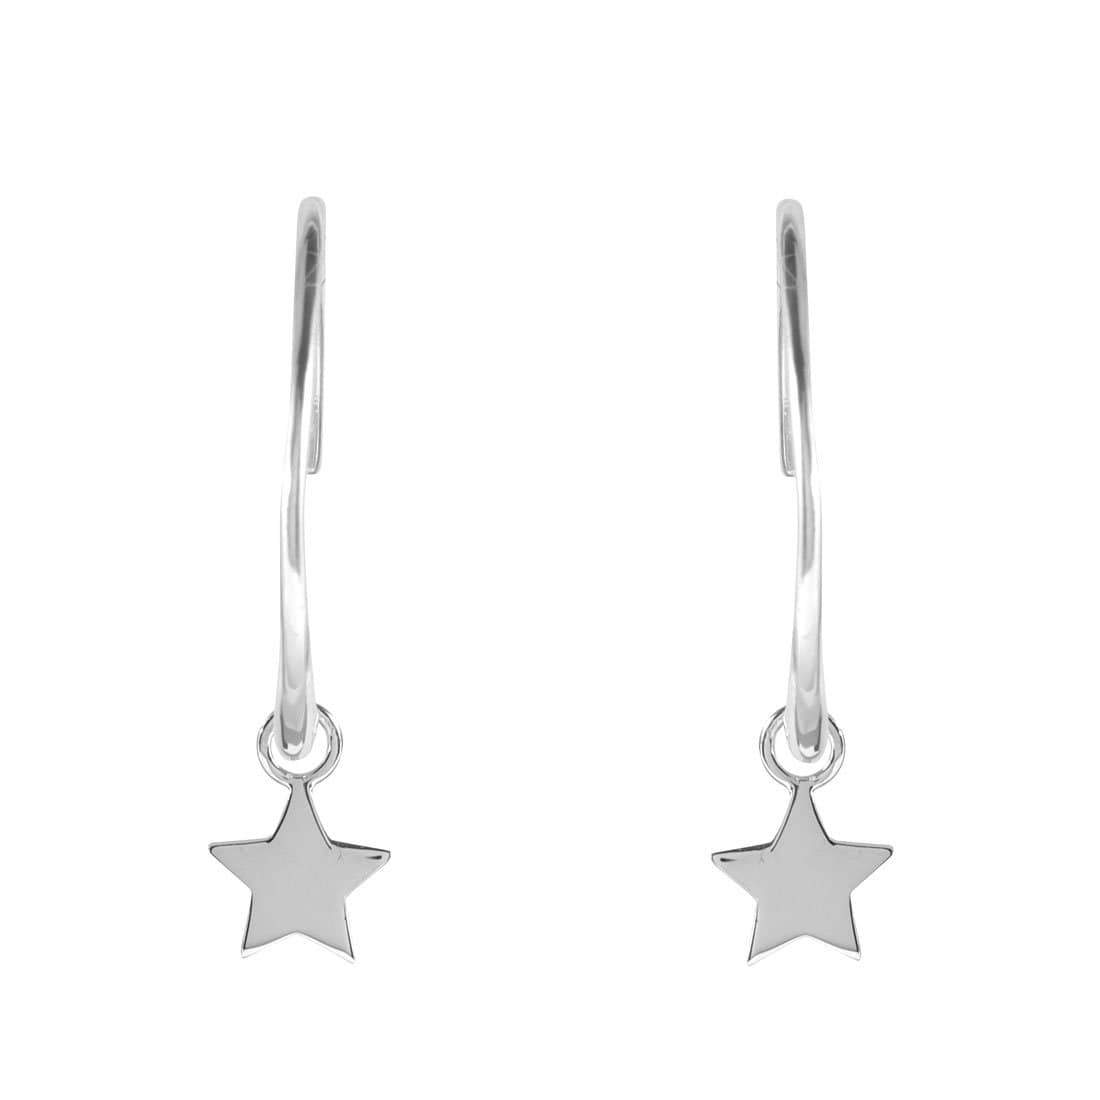 Midsummer Star Earrings Star Light Hoops